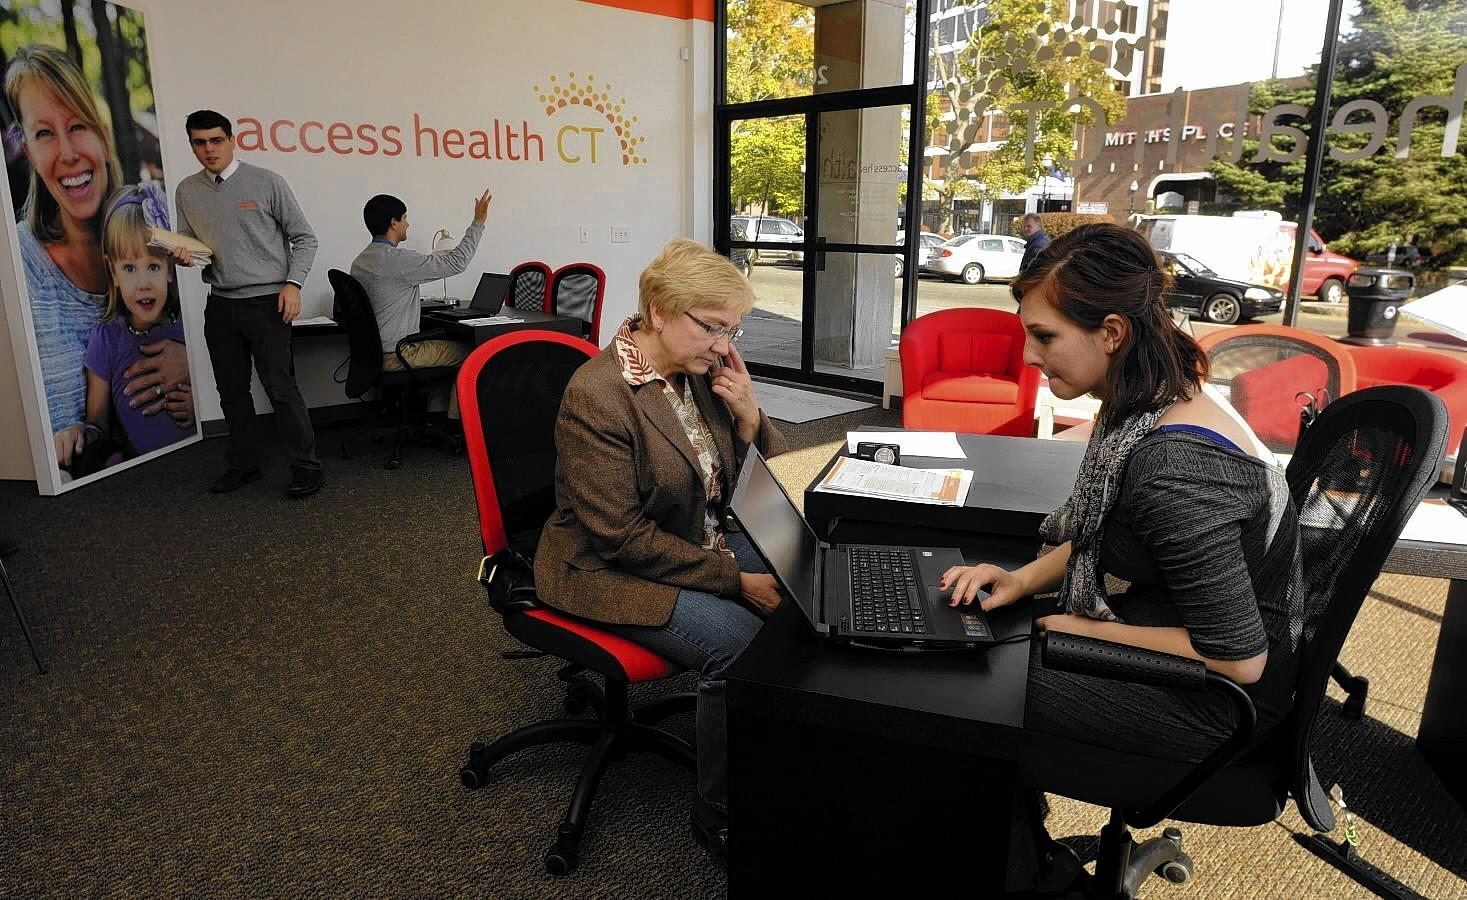 Monica Caballeros, right, a bi-lingual outreach worker from Hartford, answers questions for Stanislawa Rodriguez, of New Britain, about obtaining health insurance through Connecticut's new health exchange at Access Health CT's storefront in New Britain.